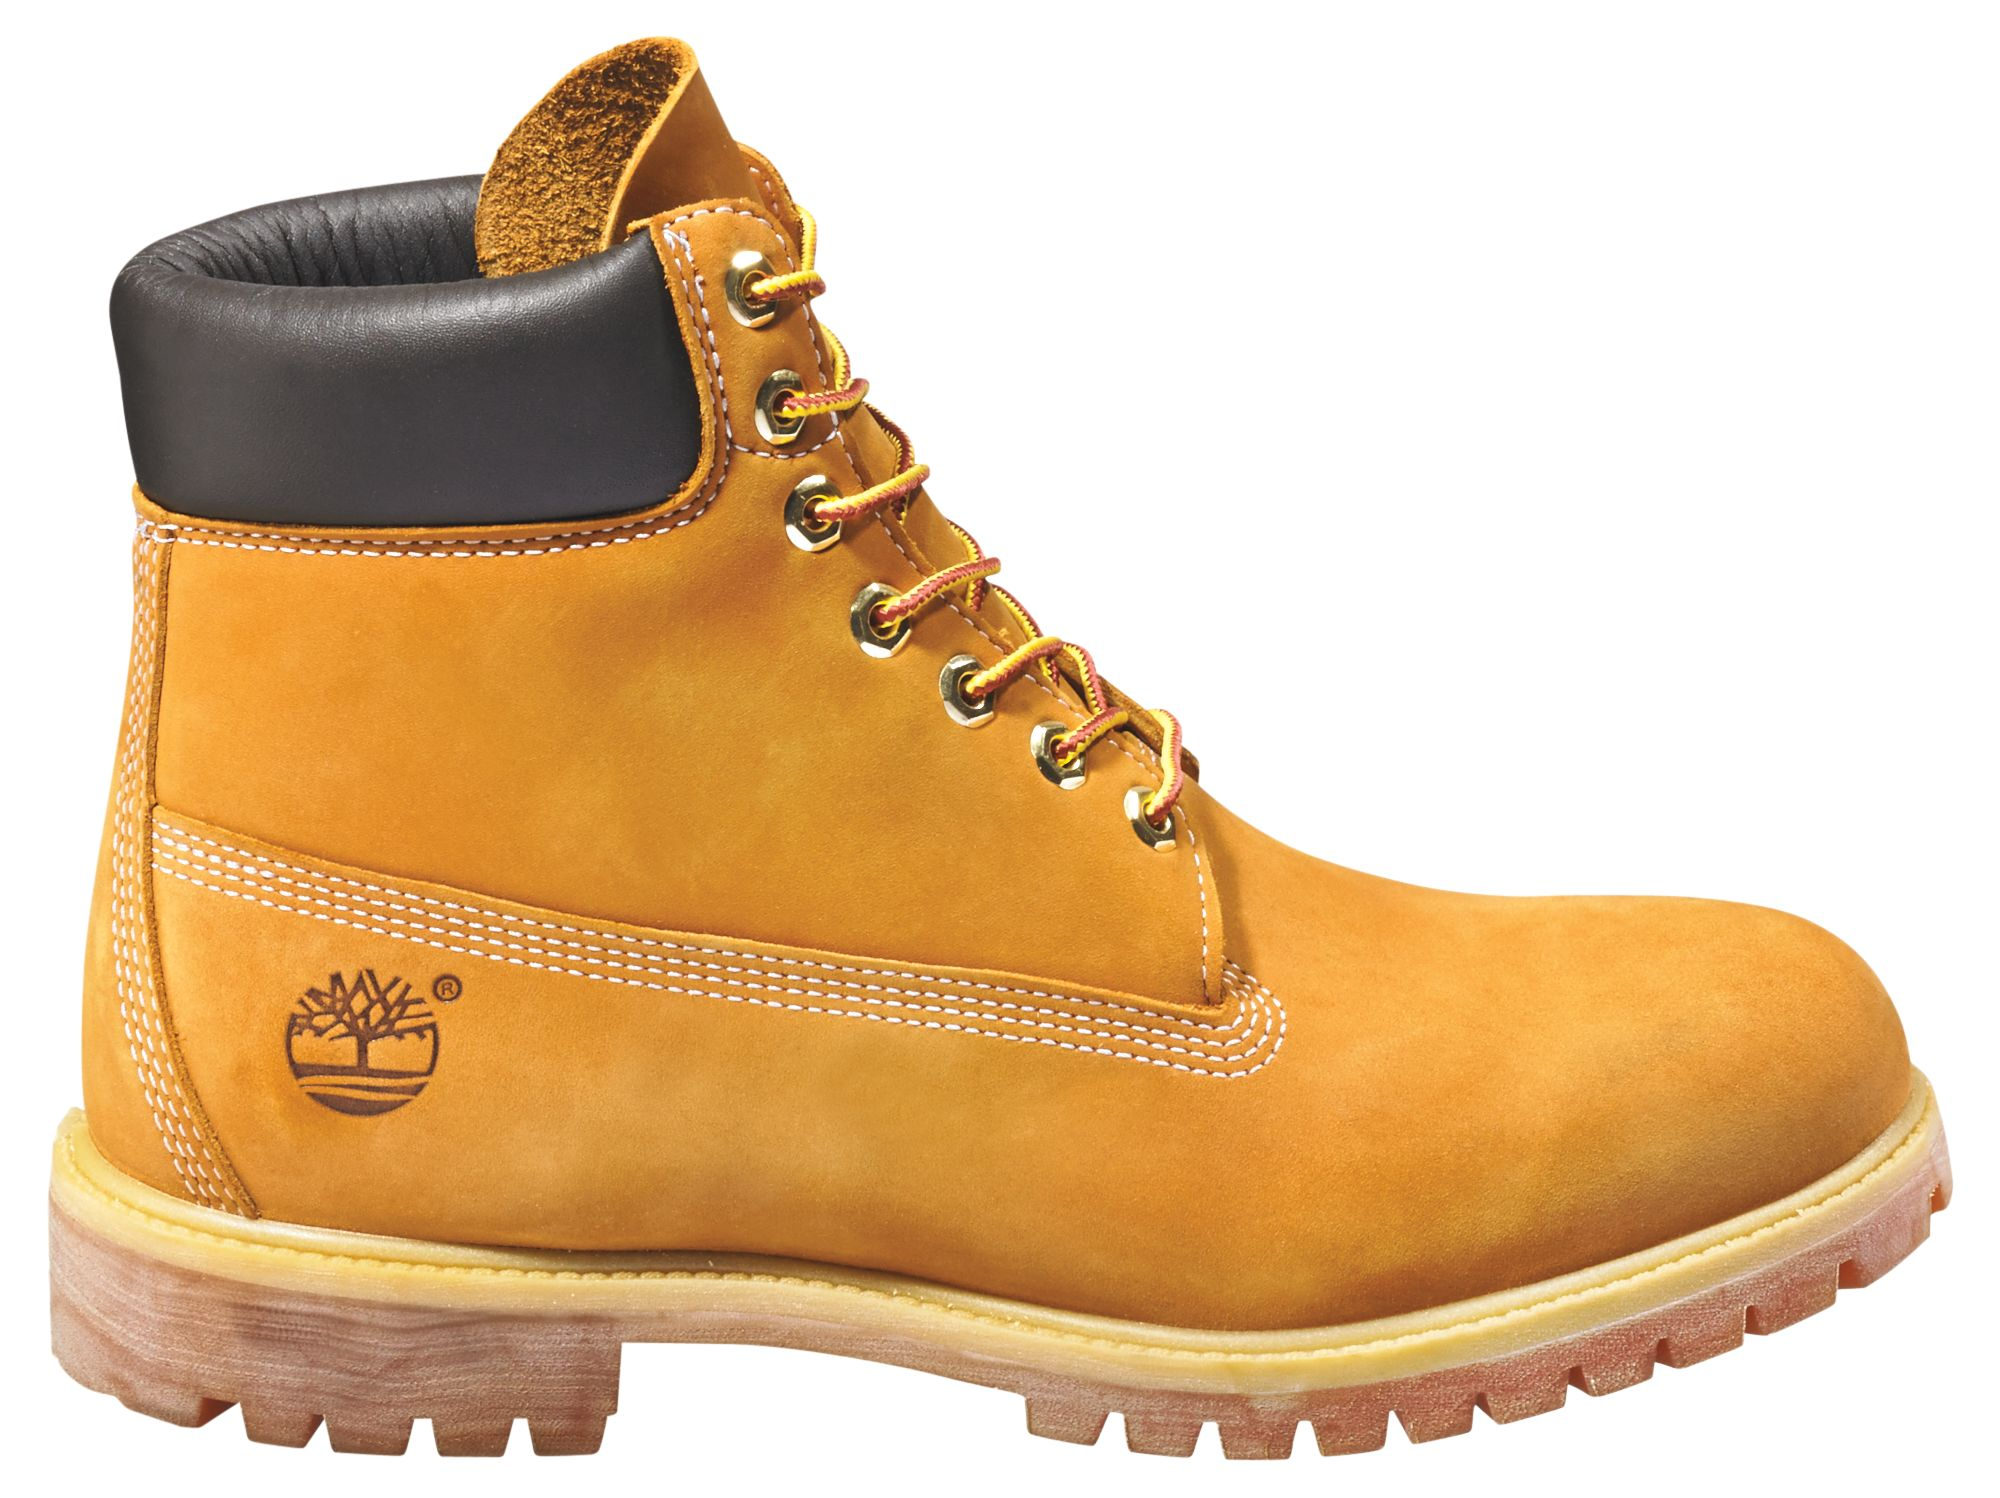 Piquete Labor Mal uso  Timberland: Shoes That Beat the Cold   Blog   Houser Shoes